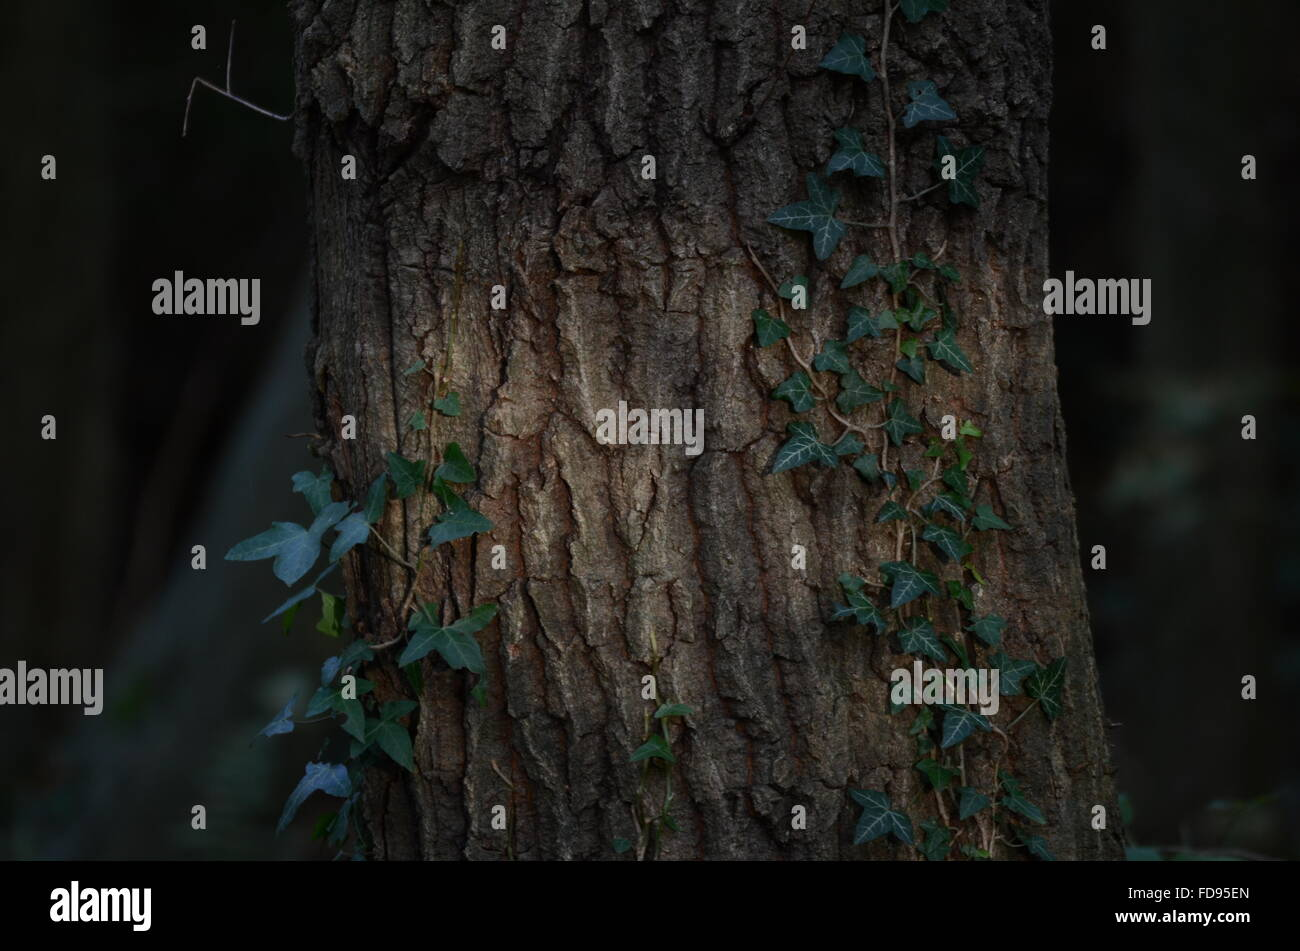 Ivy Growing On Tree Trunk - Stock Image